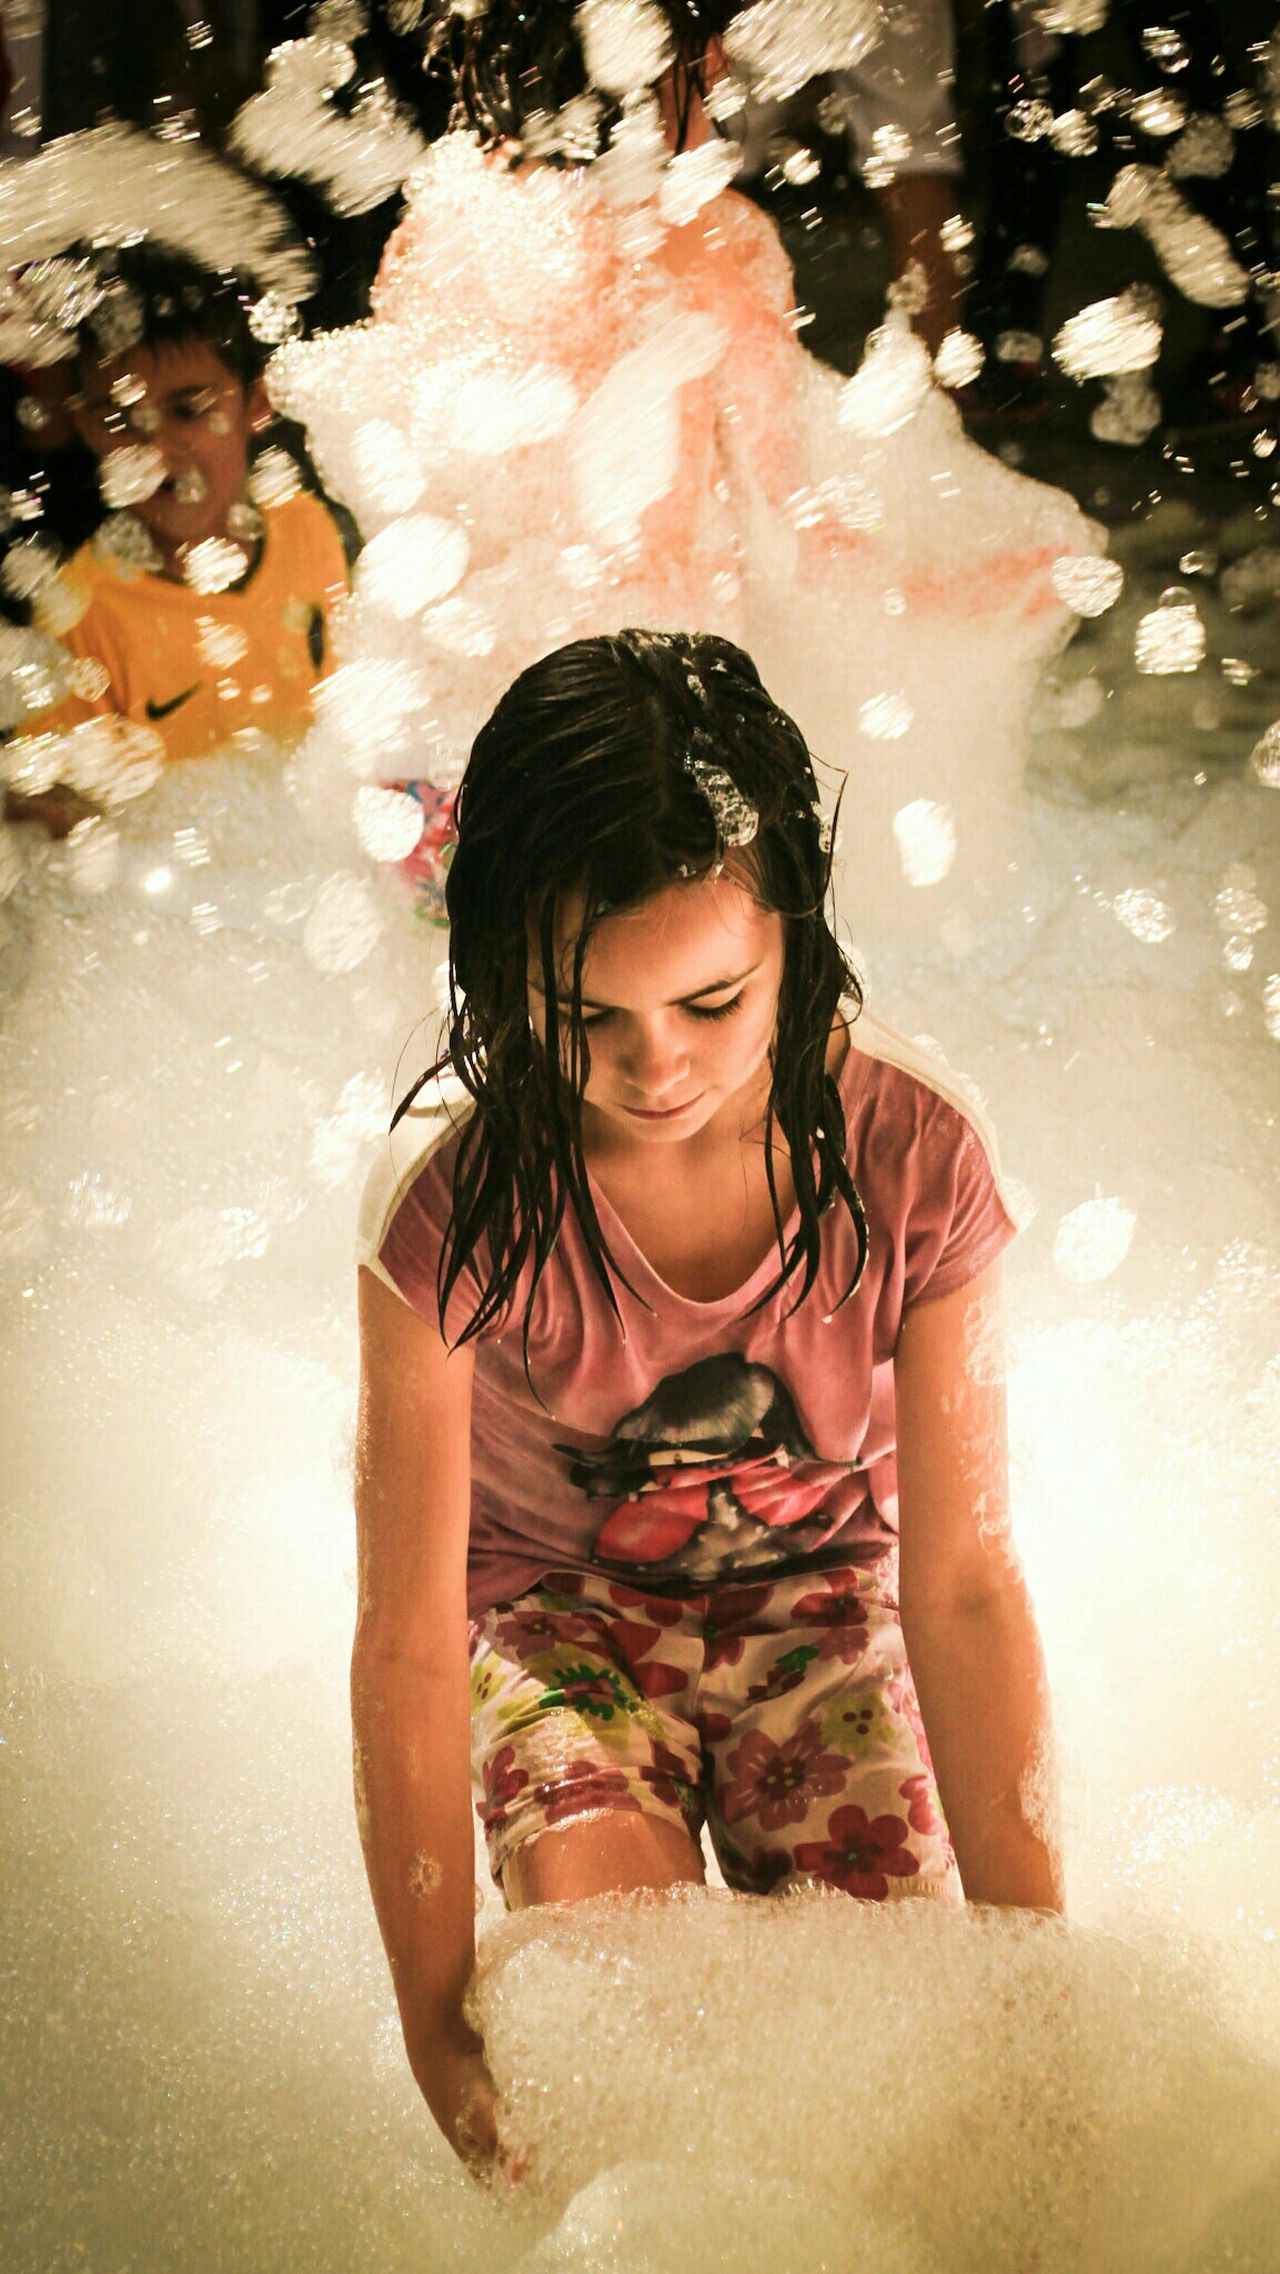 One Person Underwater Summer Enjoyment Outdoors Girl Beauty People light and reflection Fiesta De La Espuma Fiestas De Pueblo Village Life Village Party Light And Shadow Portrait Catch The Moment Foam Foamparty Foam Party Foam Art Check This Out EyeEm Gallery EyeEm Best Shots Enjoying Life Enjoy The New Normal My Year My View